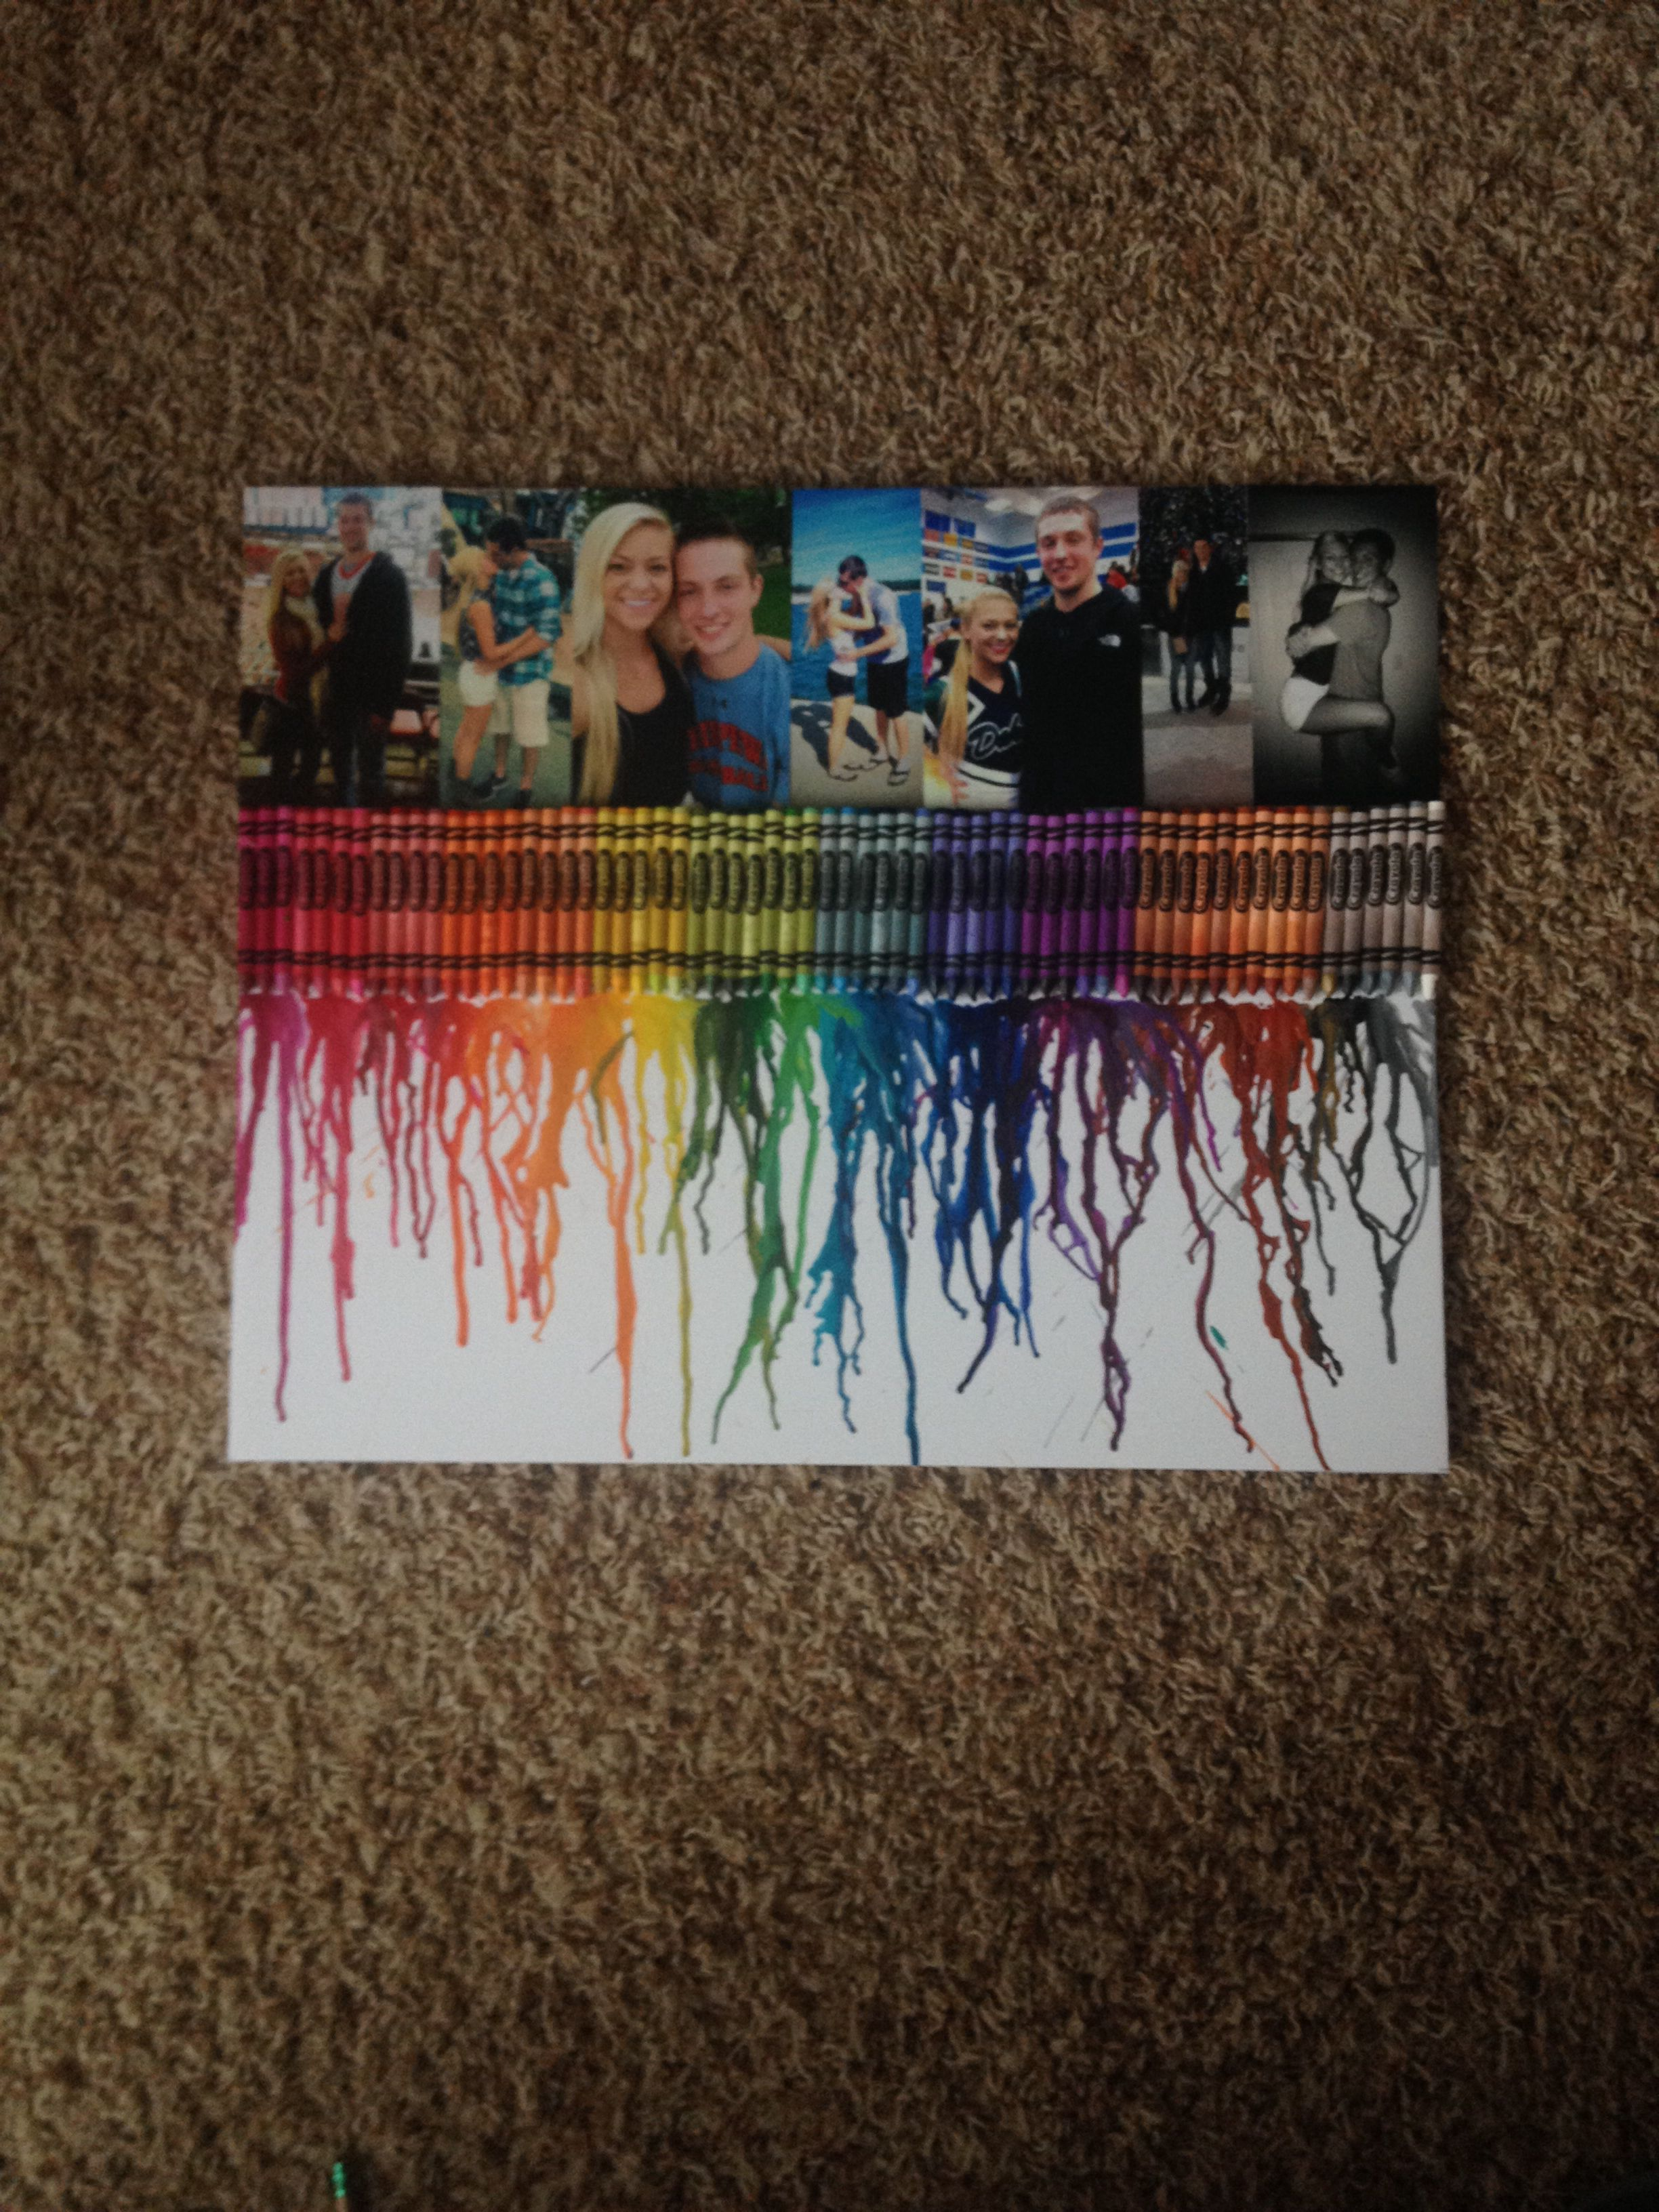 Crayon Melting With Pictures Of My Boyfriend And I I Made Him This For Our One Year Melting Crayons Crayon Art Melted 1 Year Anniversary Gifts